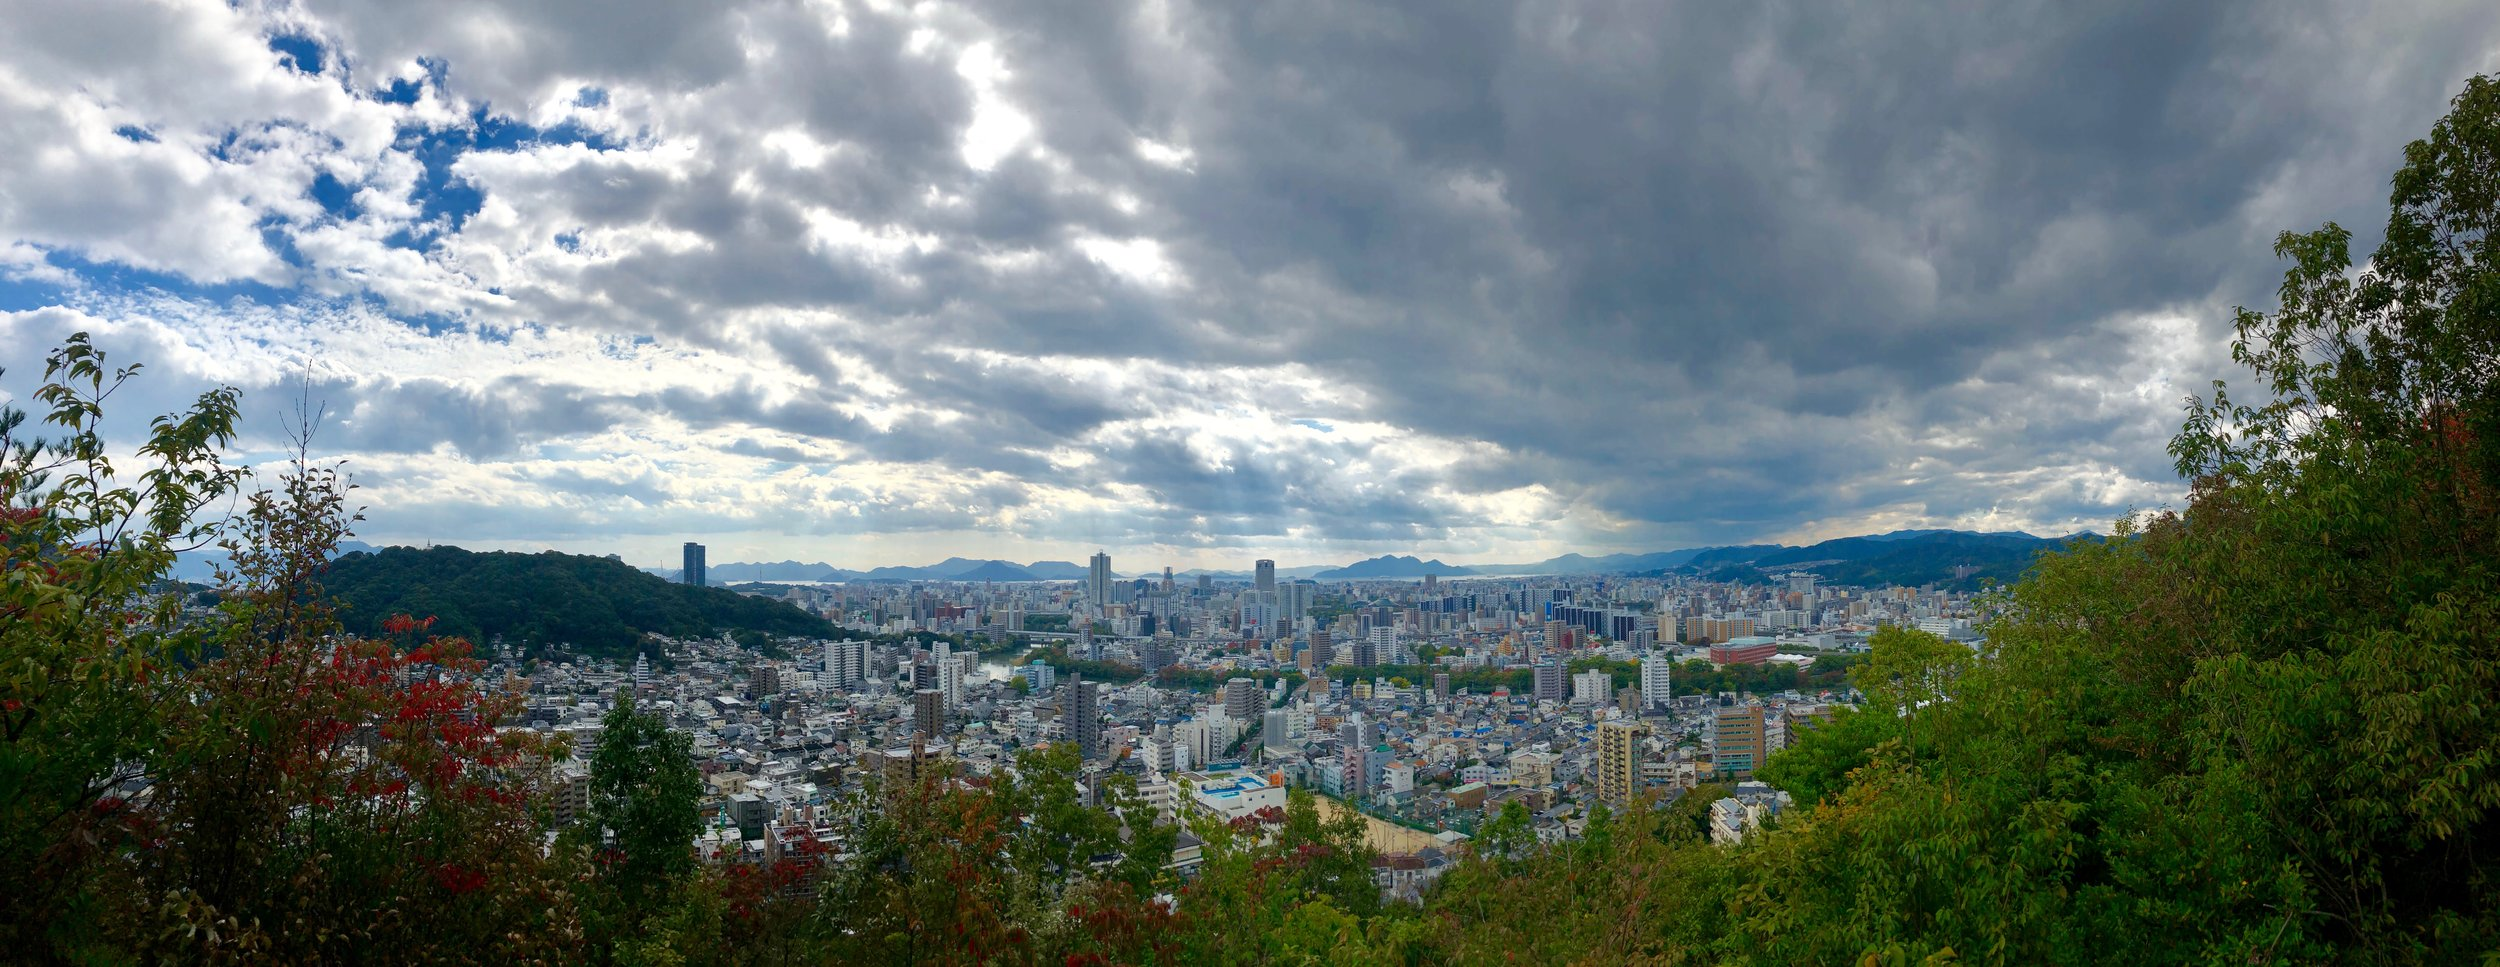 View from atop a mountain overlooking Hiroshima, Japan.